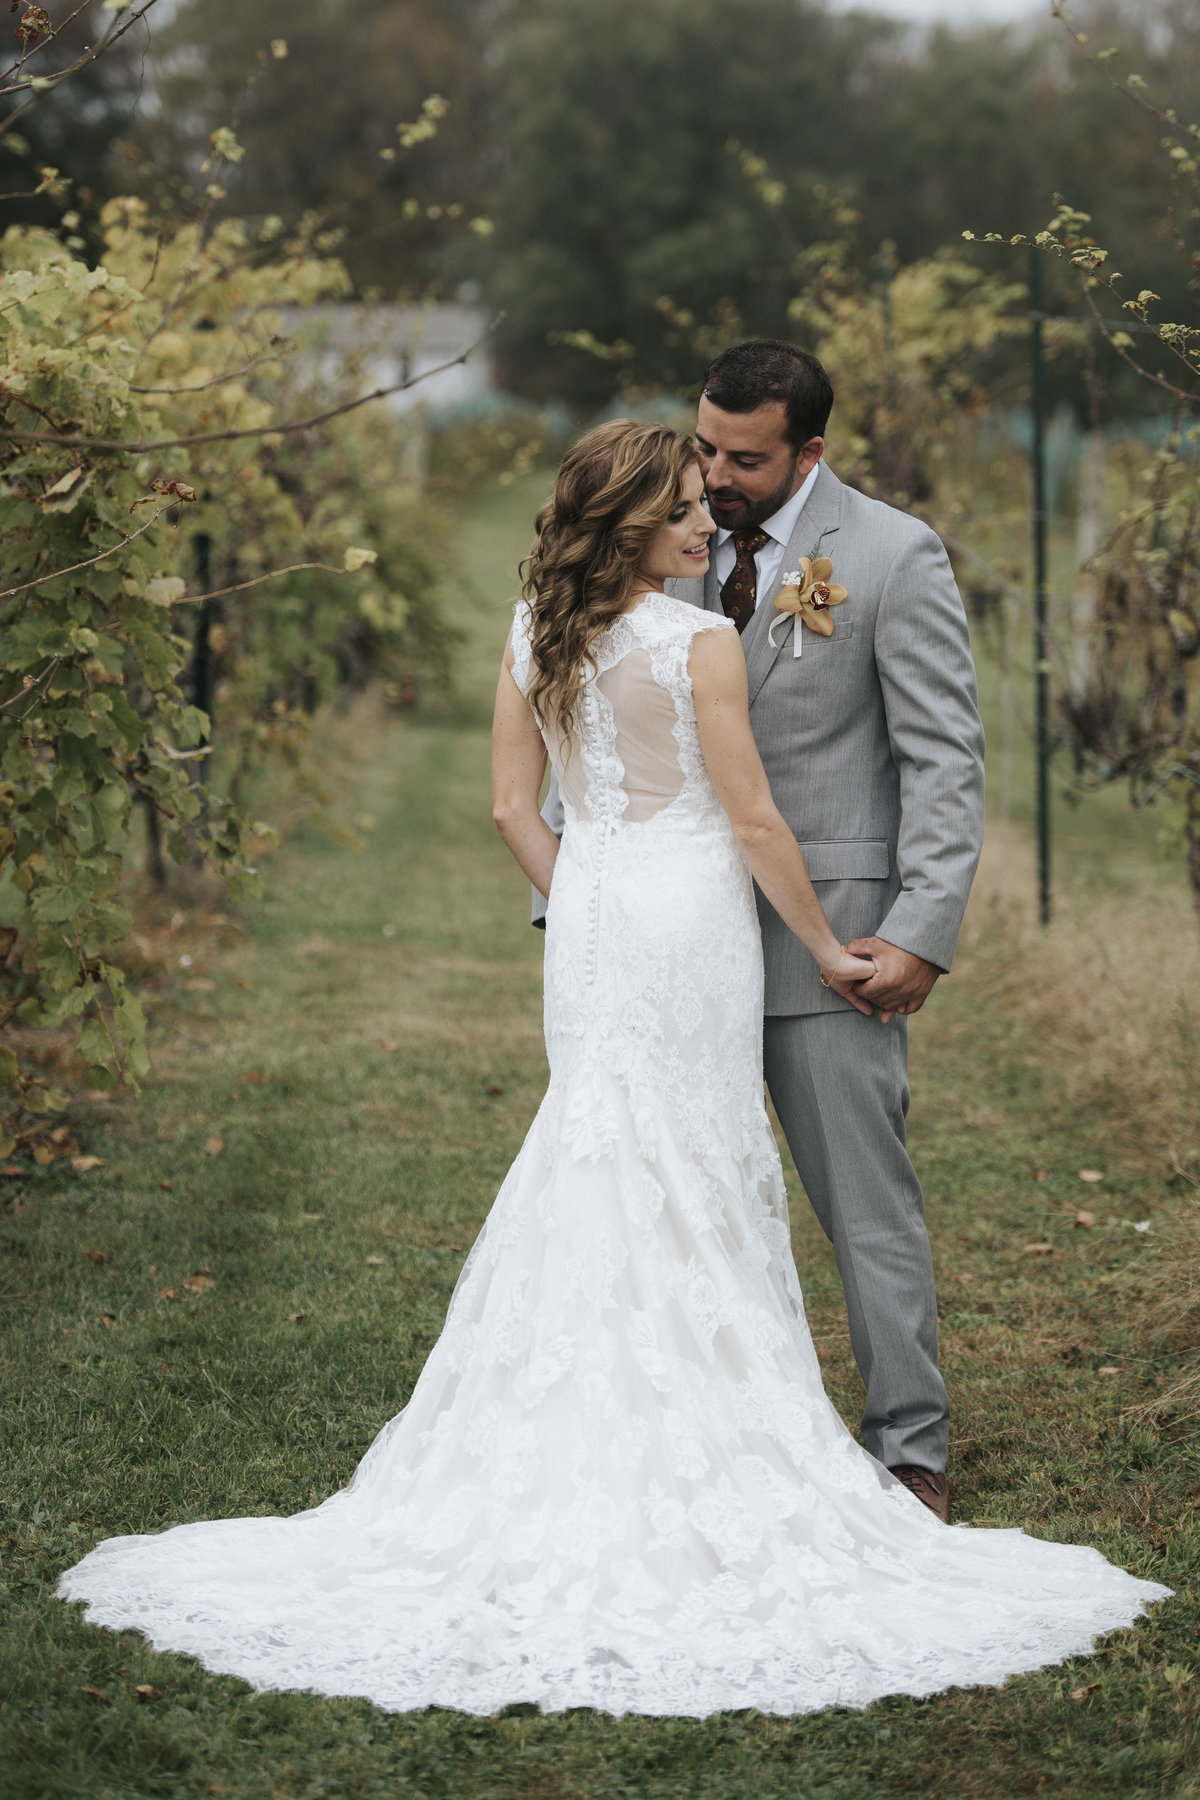 a-creative-focus-photography-priam-vineyards-wedding-Block-island-wedding-photographer_81